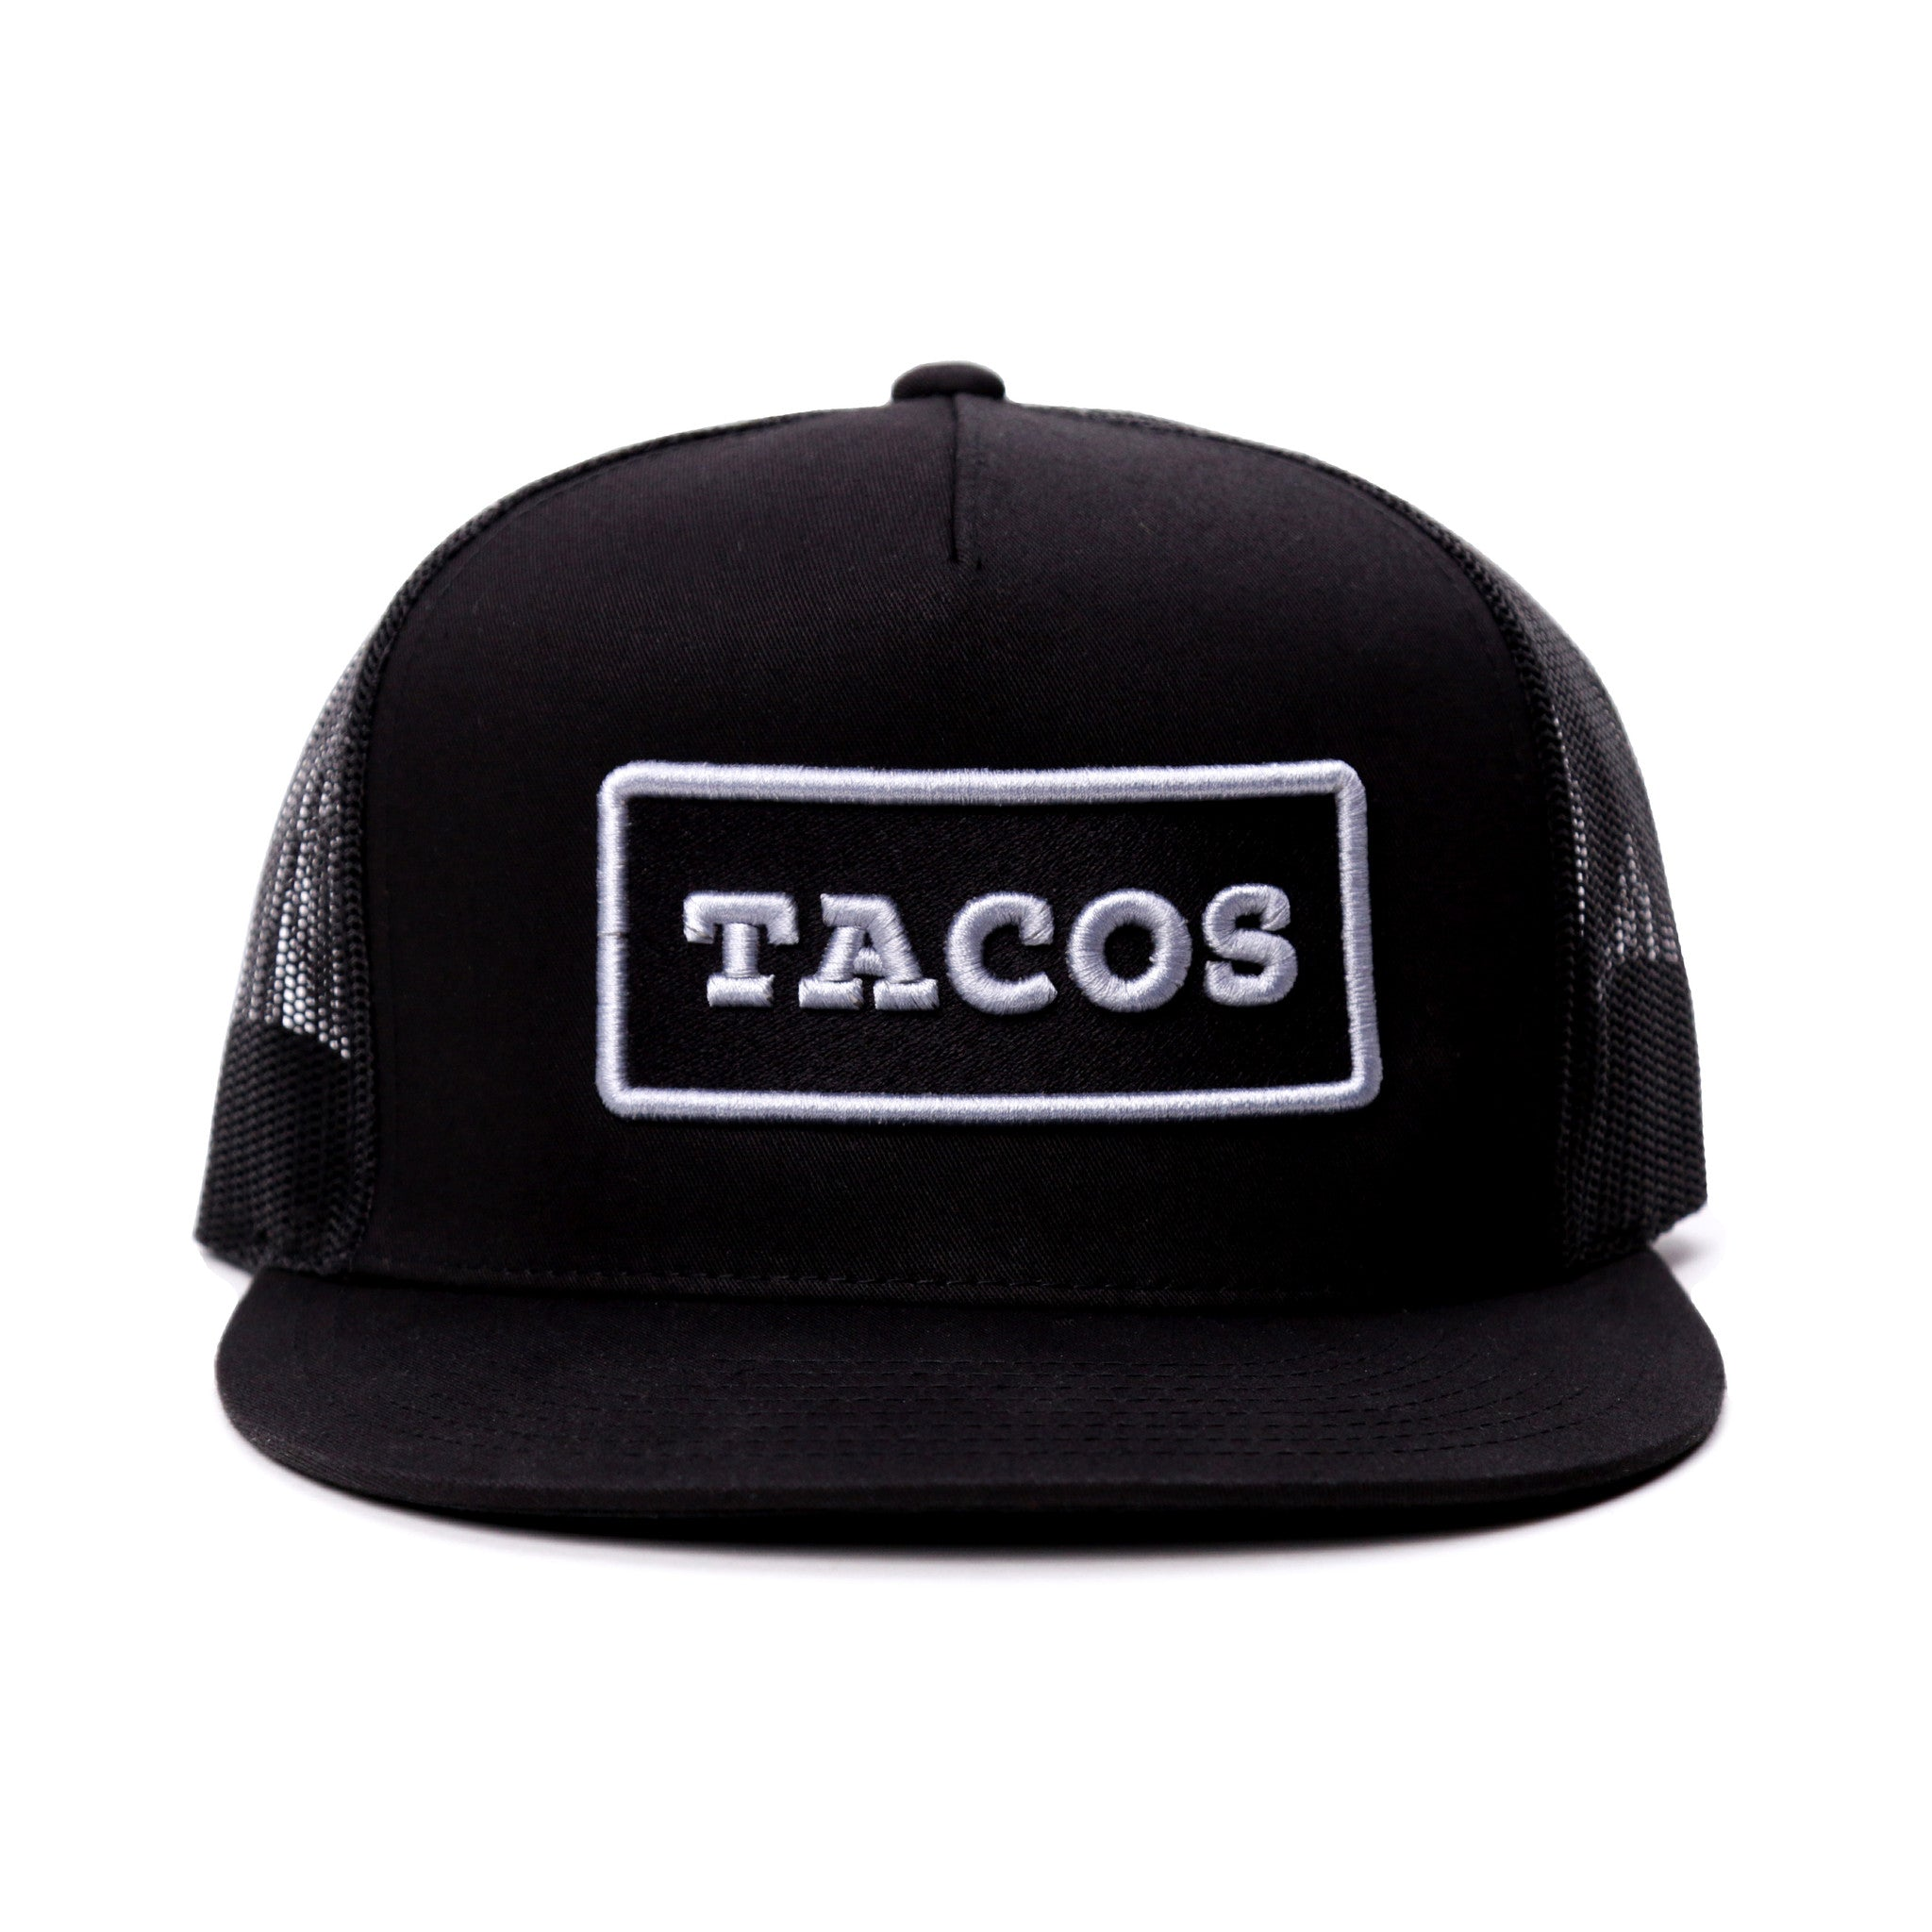 Taco Gear Tacos Patch Trucker Hat